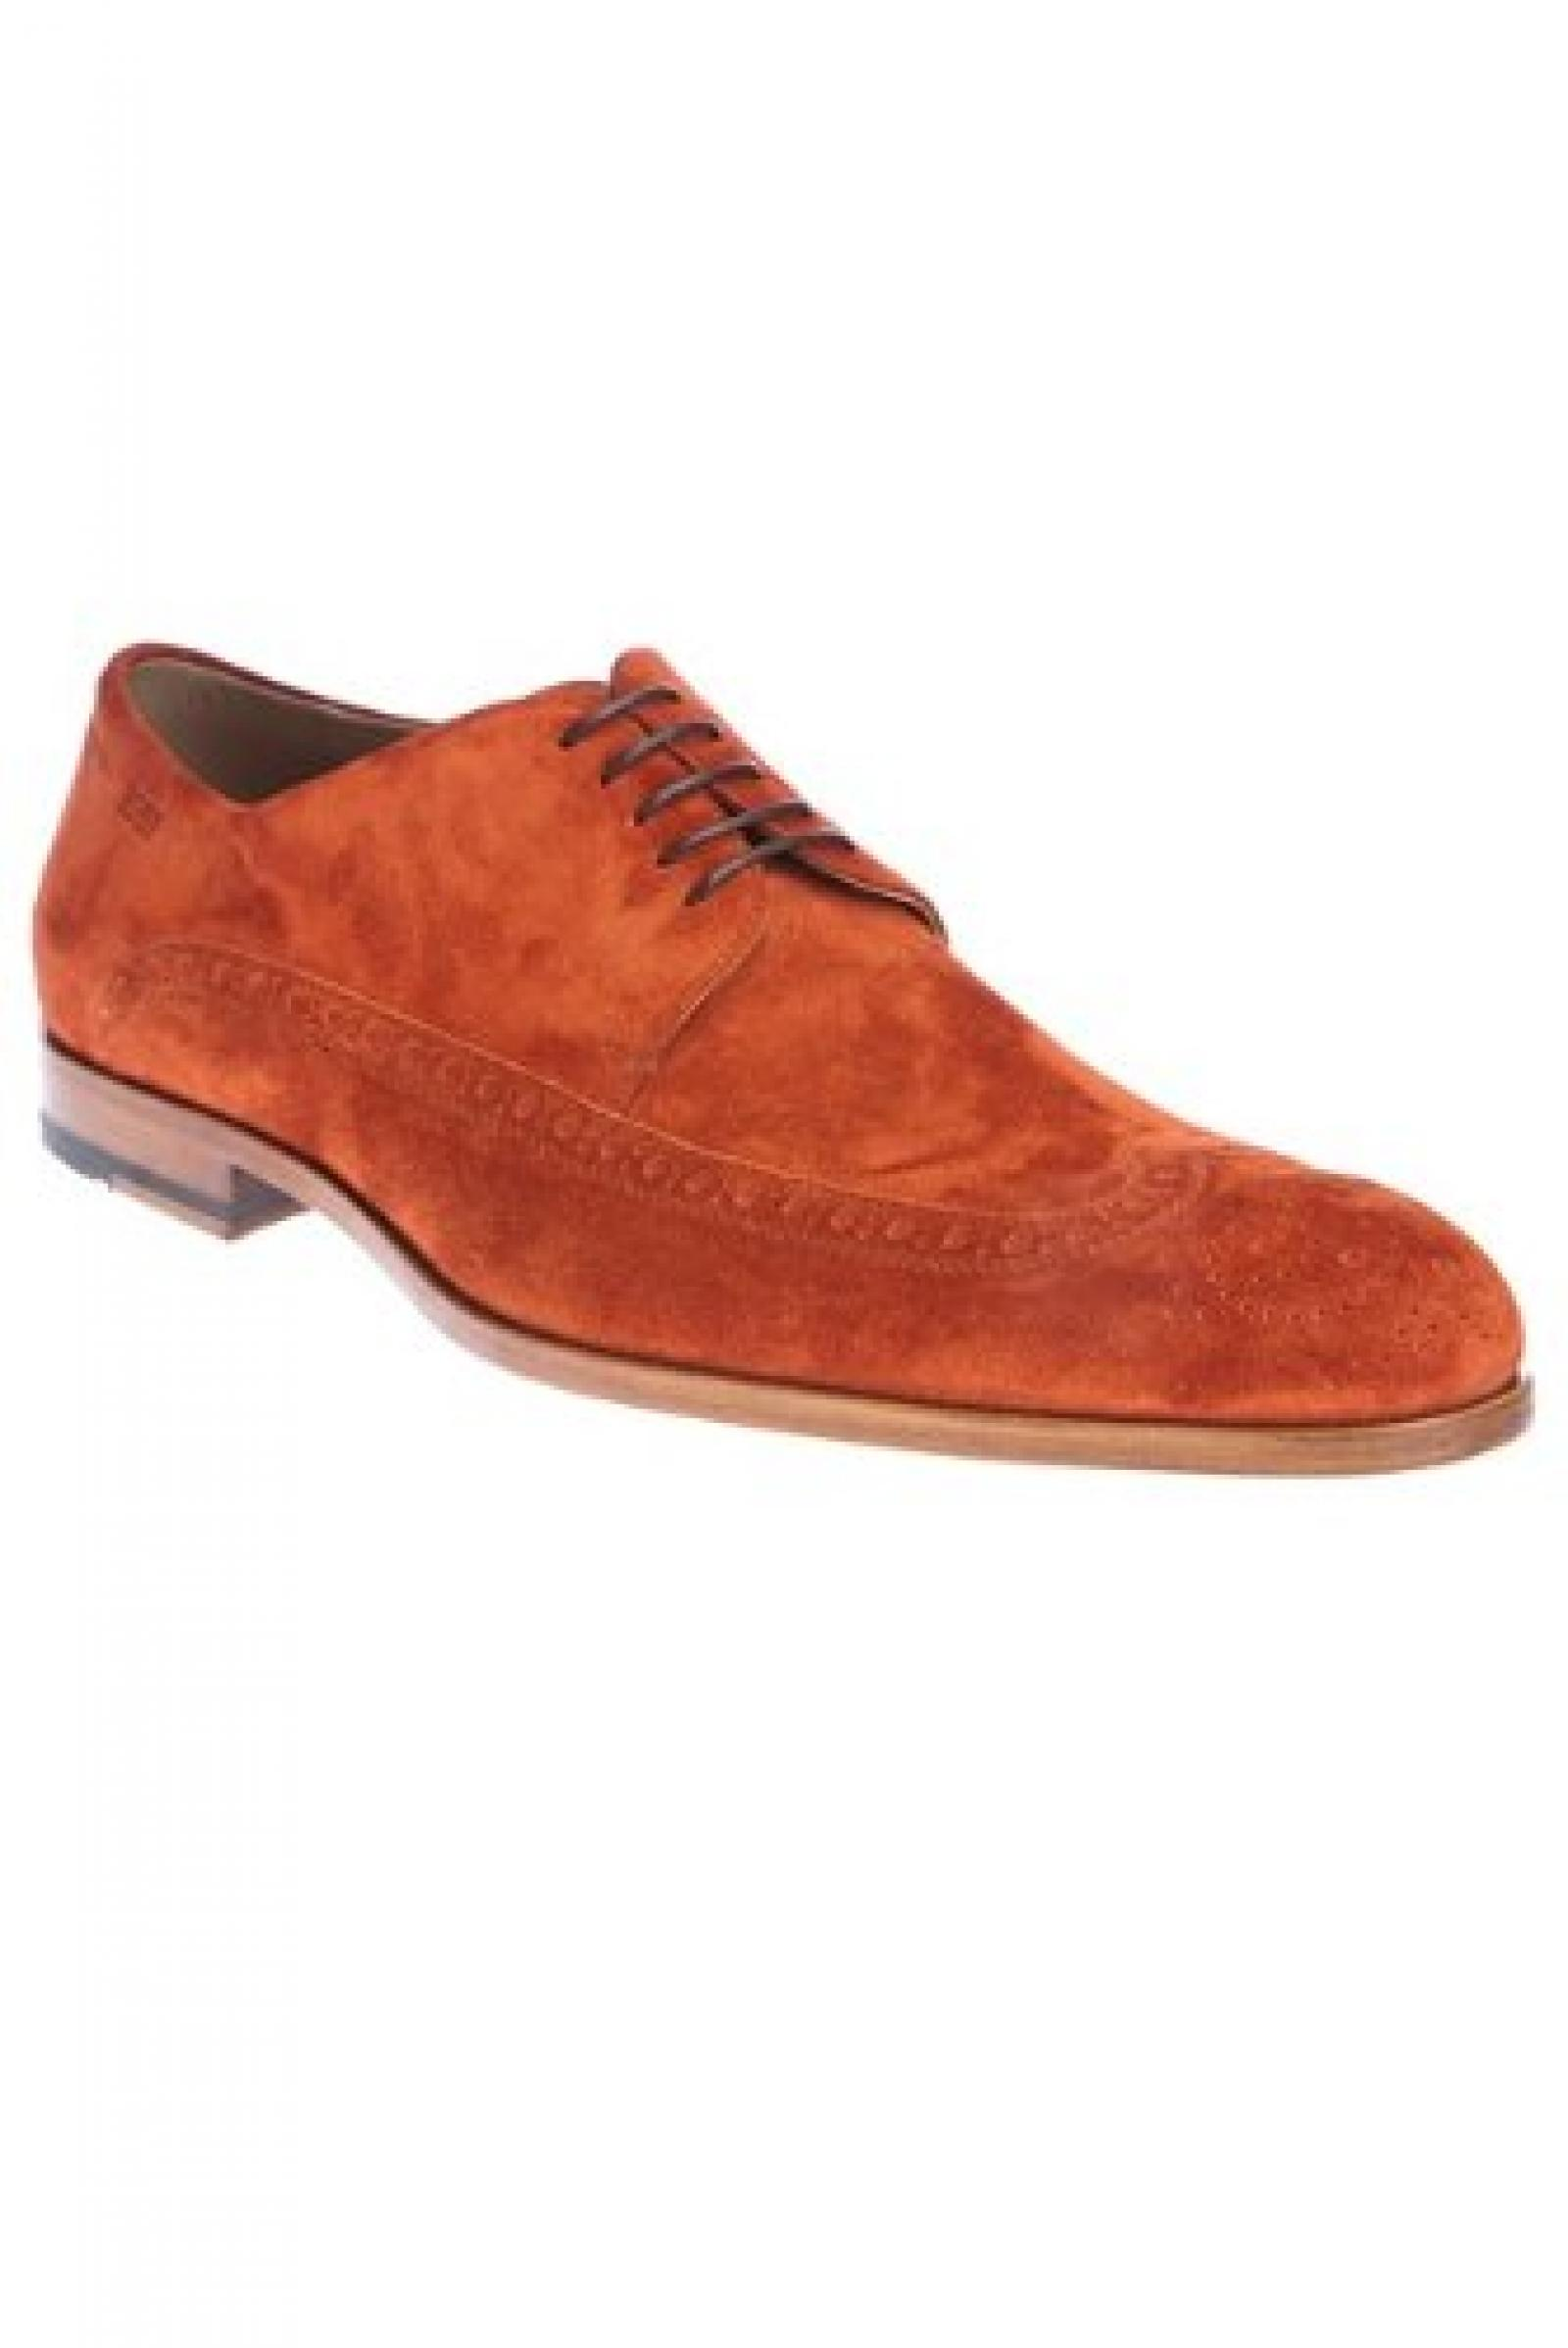 Hugo Boss Shoe Fisseo in Orange